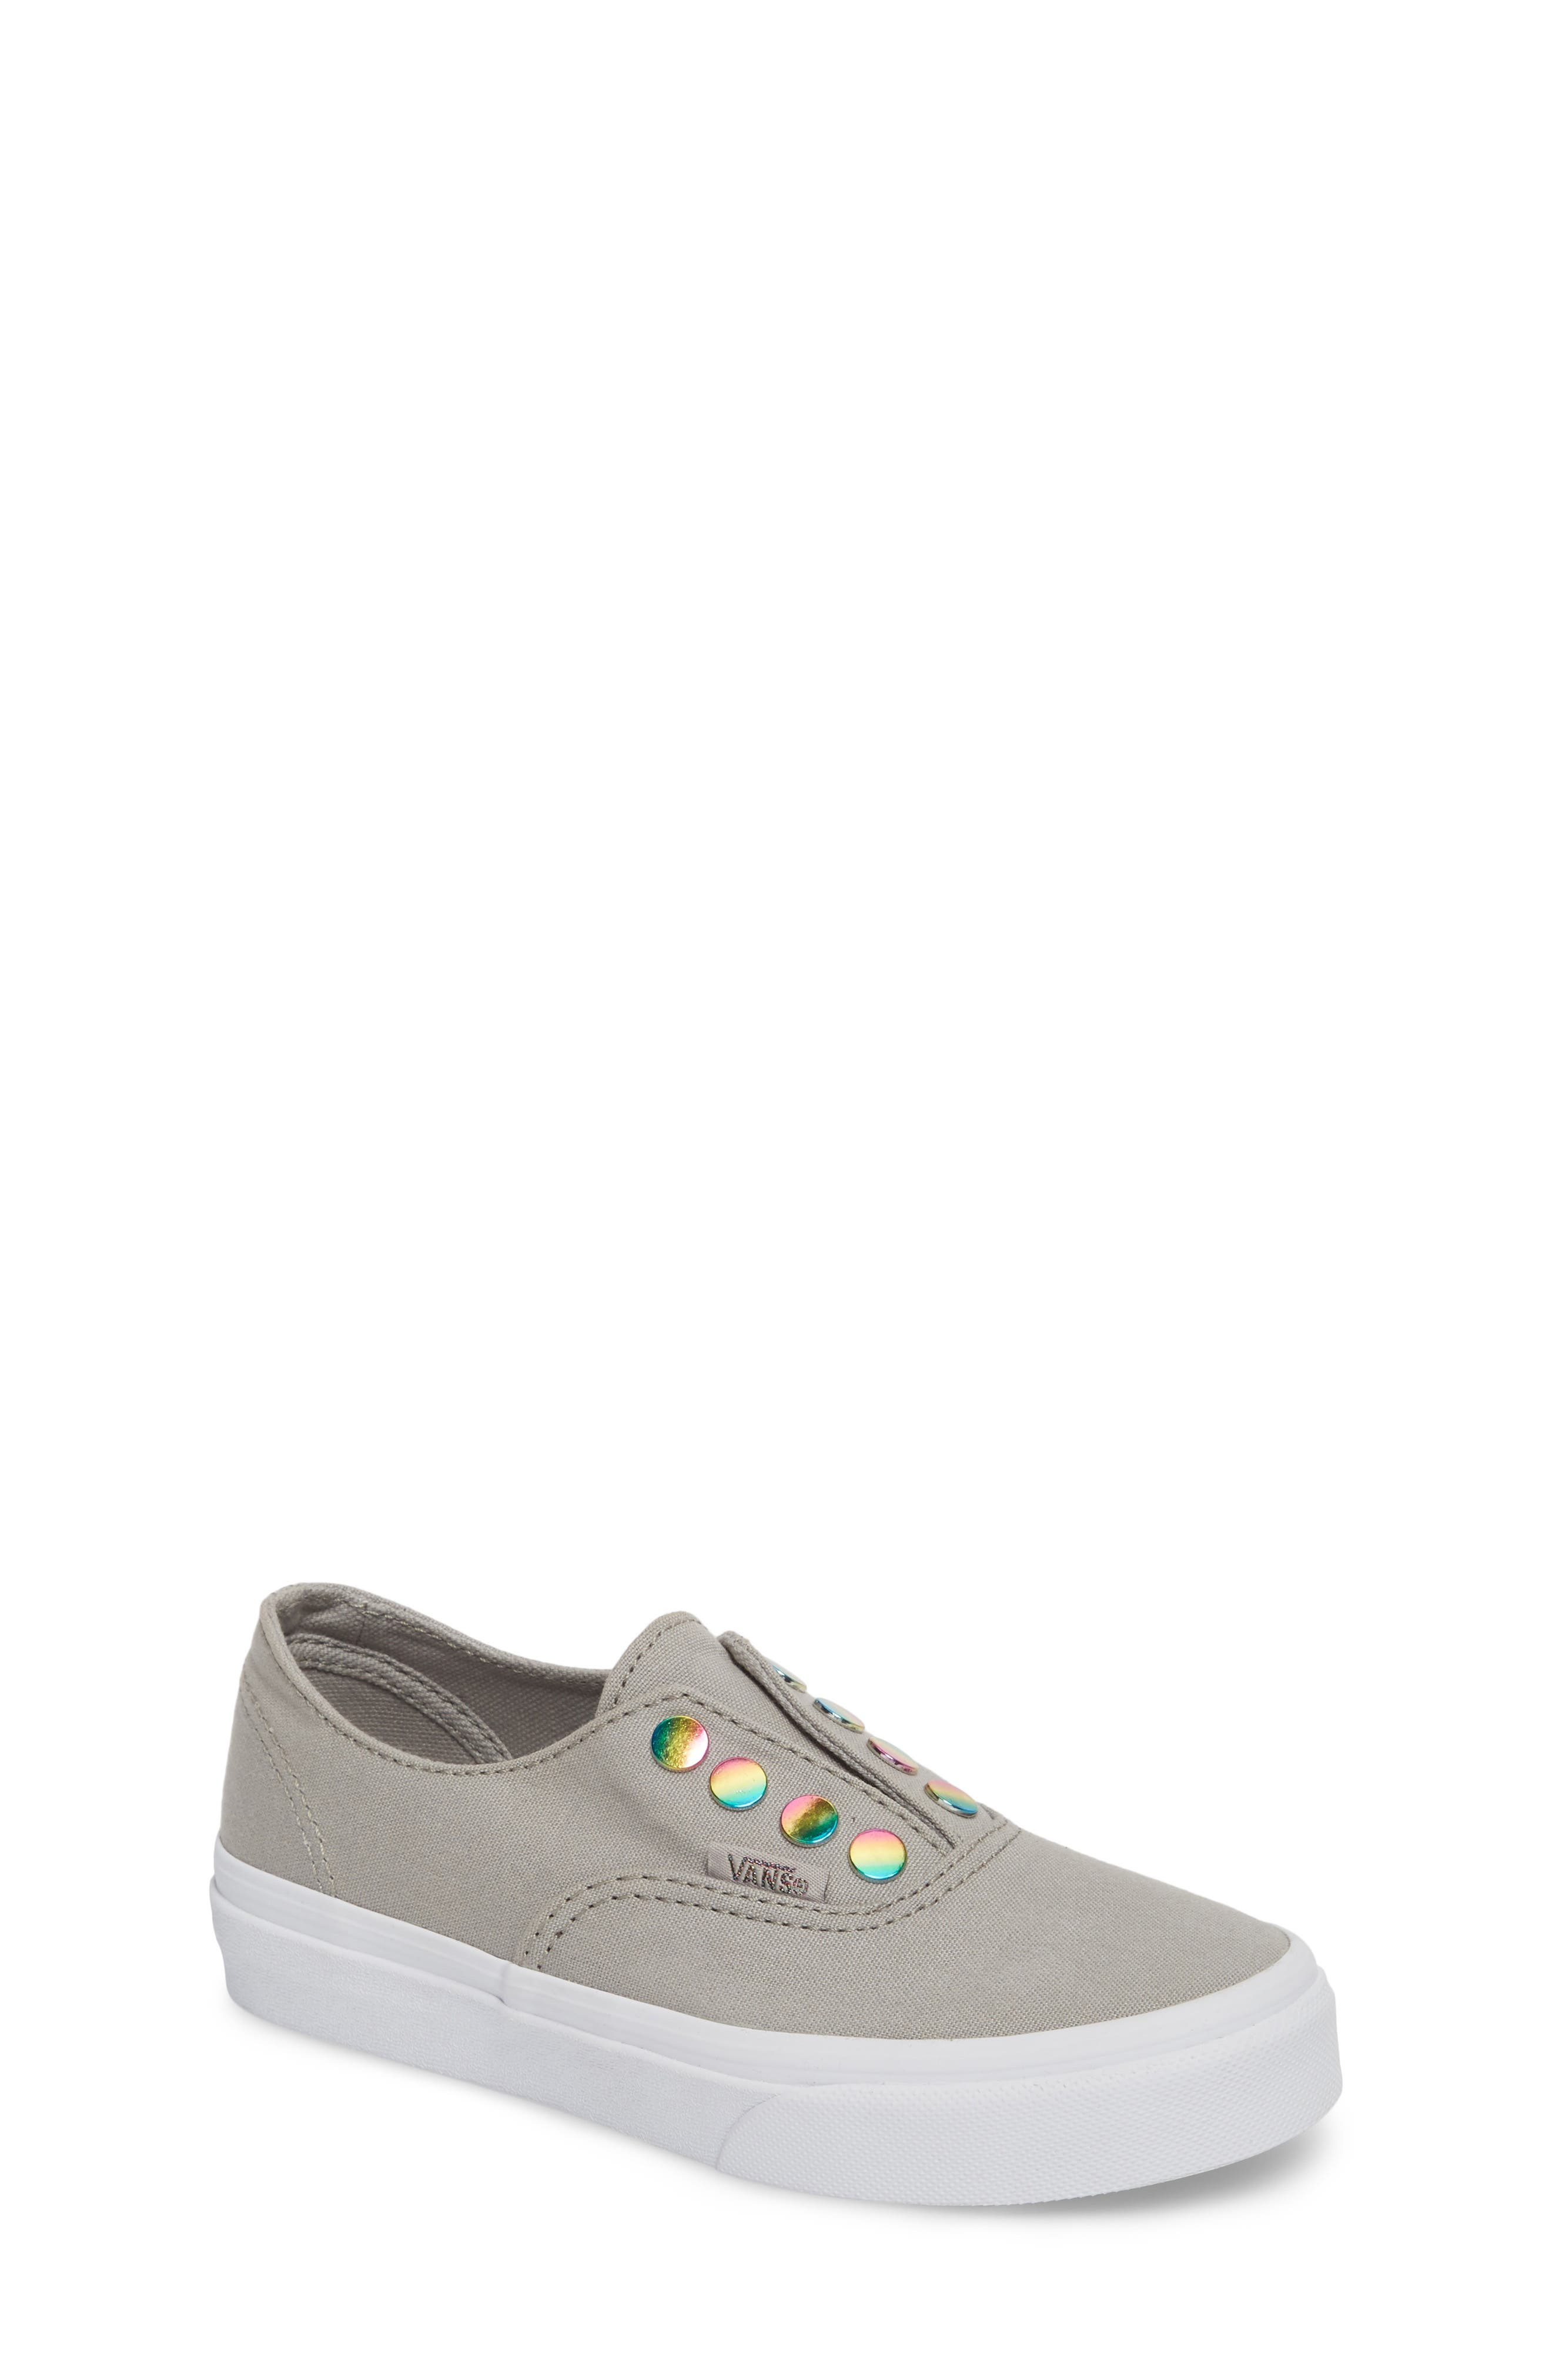 Authentic Gore Slip-On Sneaker,                             Main thumbnail 1, color,                             Drizzle/ Rainbow Eyelet